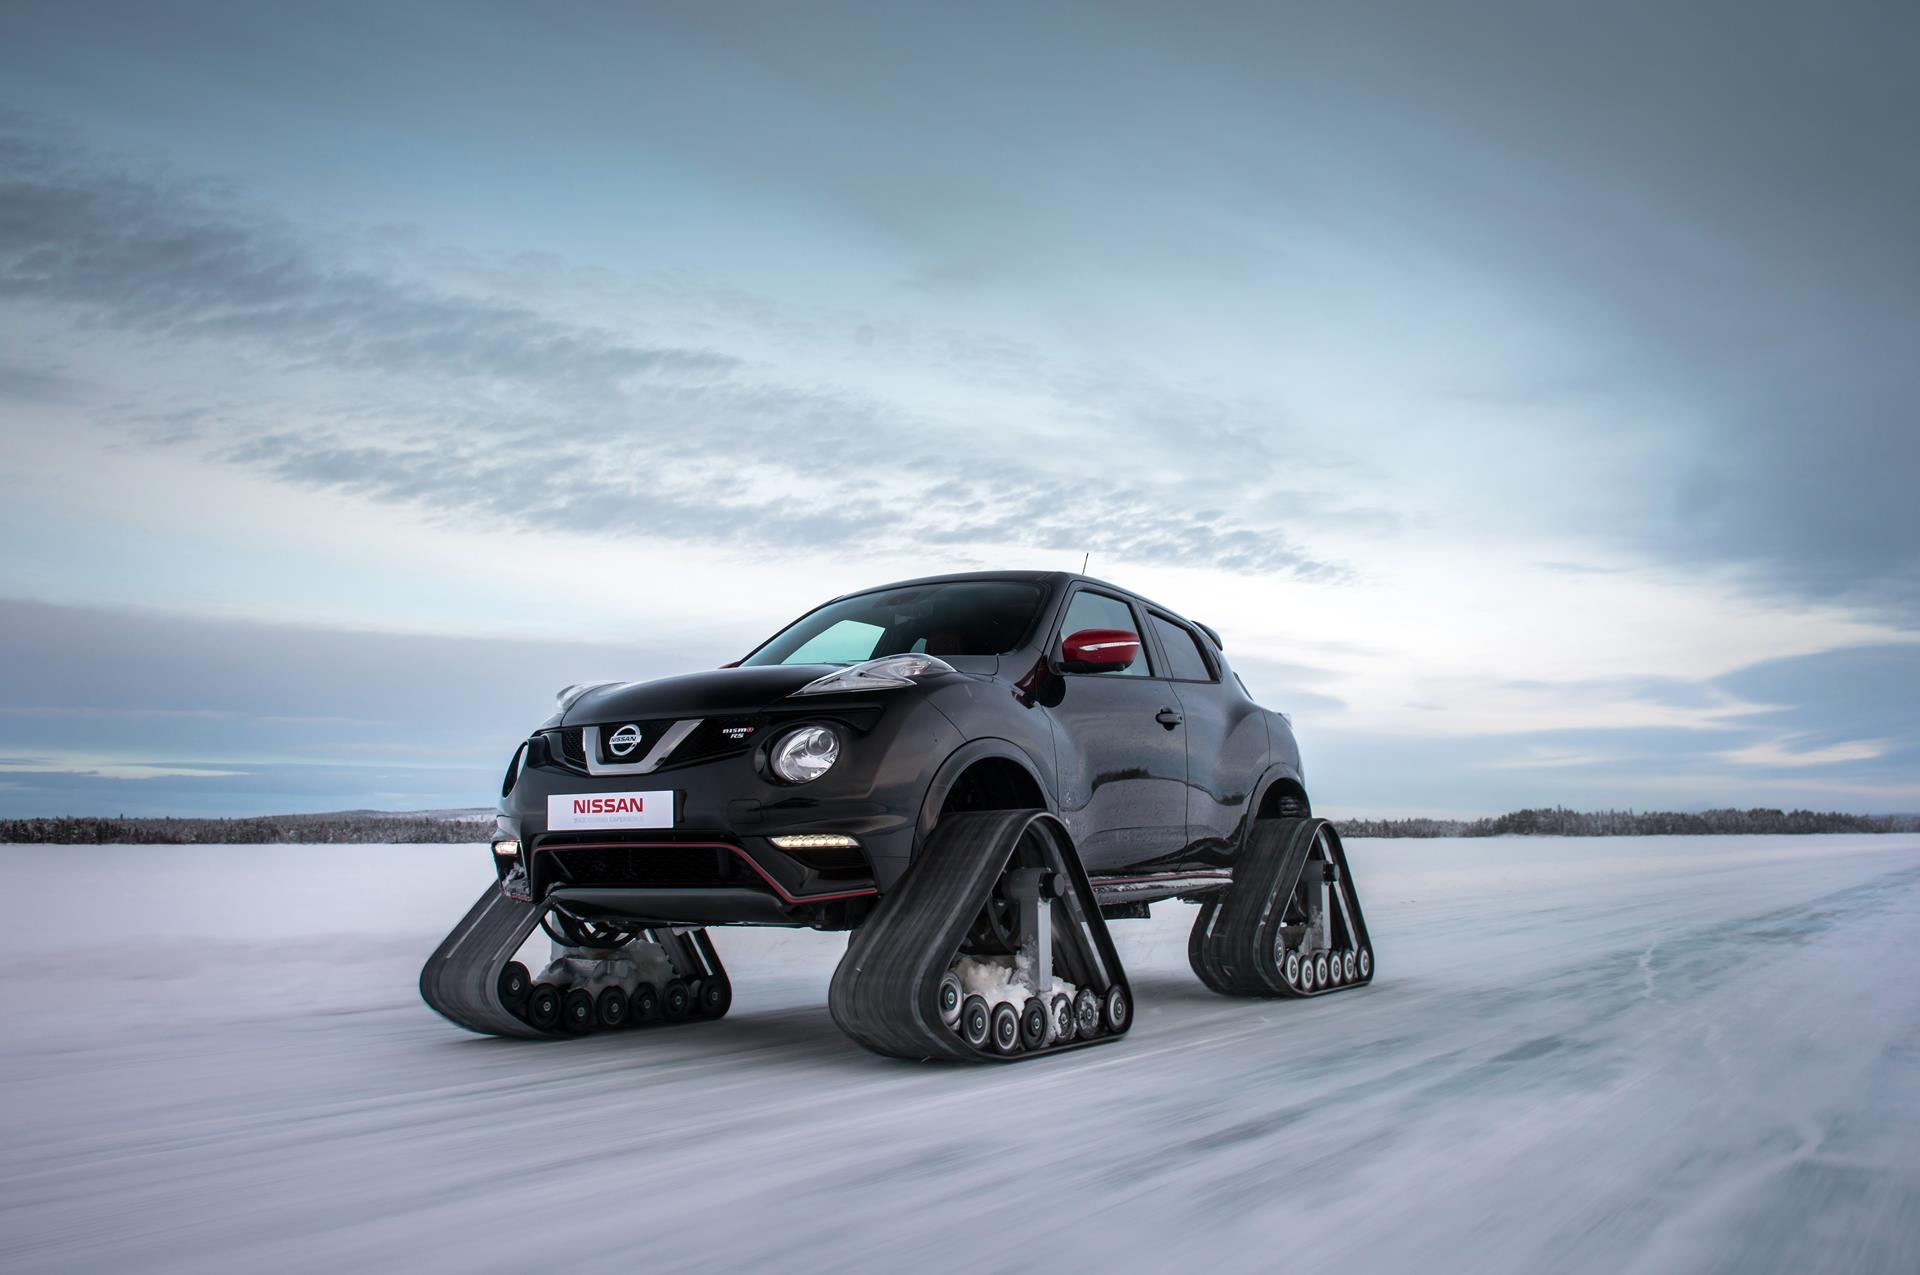 Dodge Muscle Car Wallpaper 2015 Nissan Juke Nismo Rsnow Concept News And Information